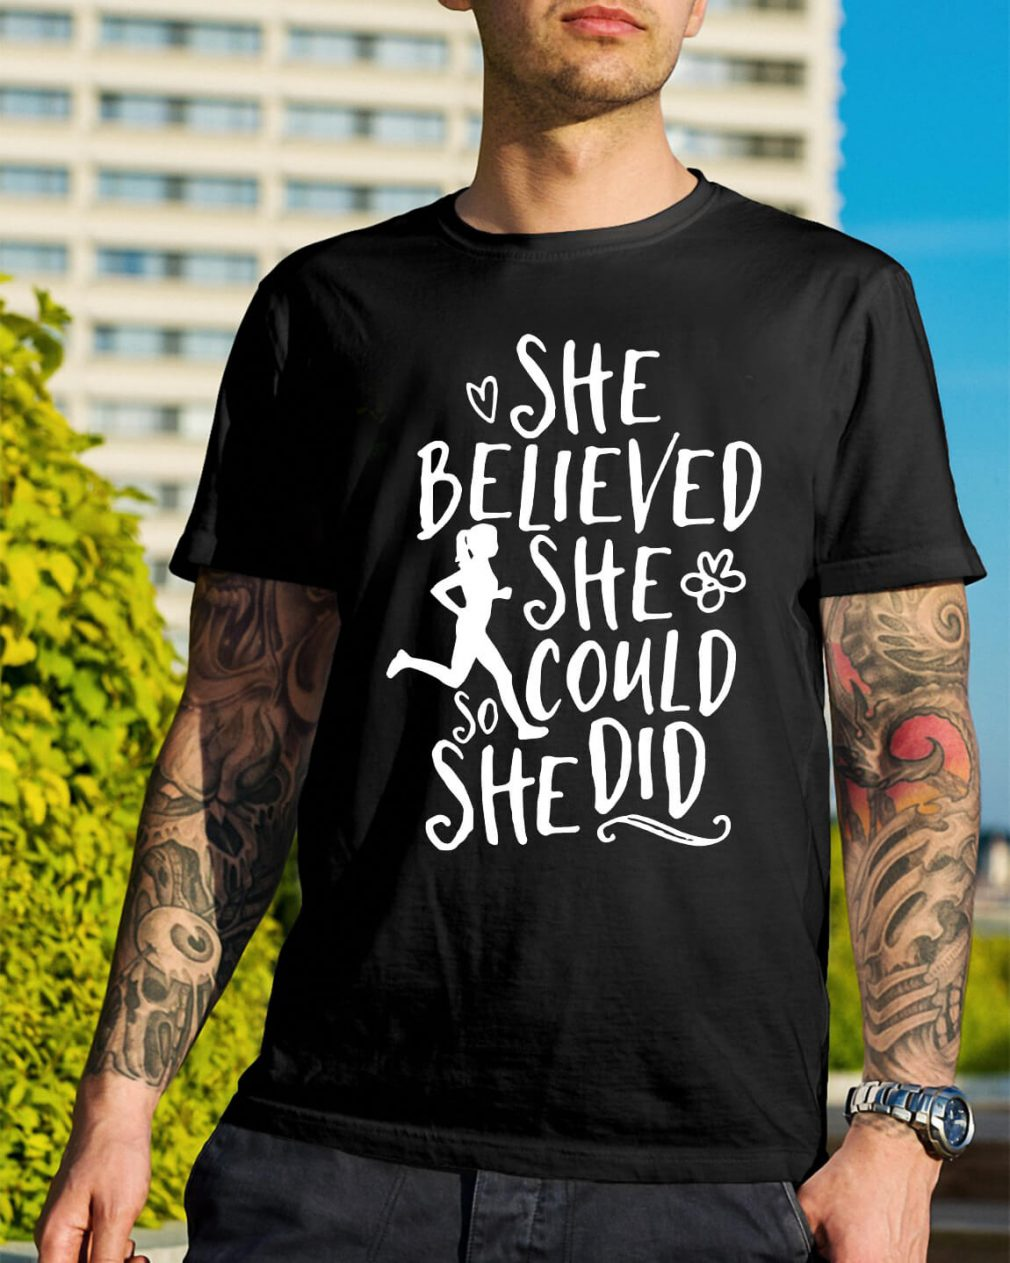 She believed she could she did shirt